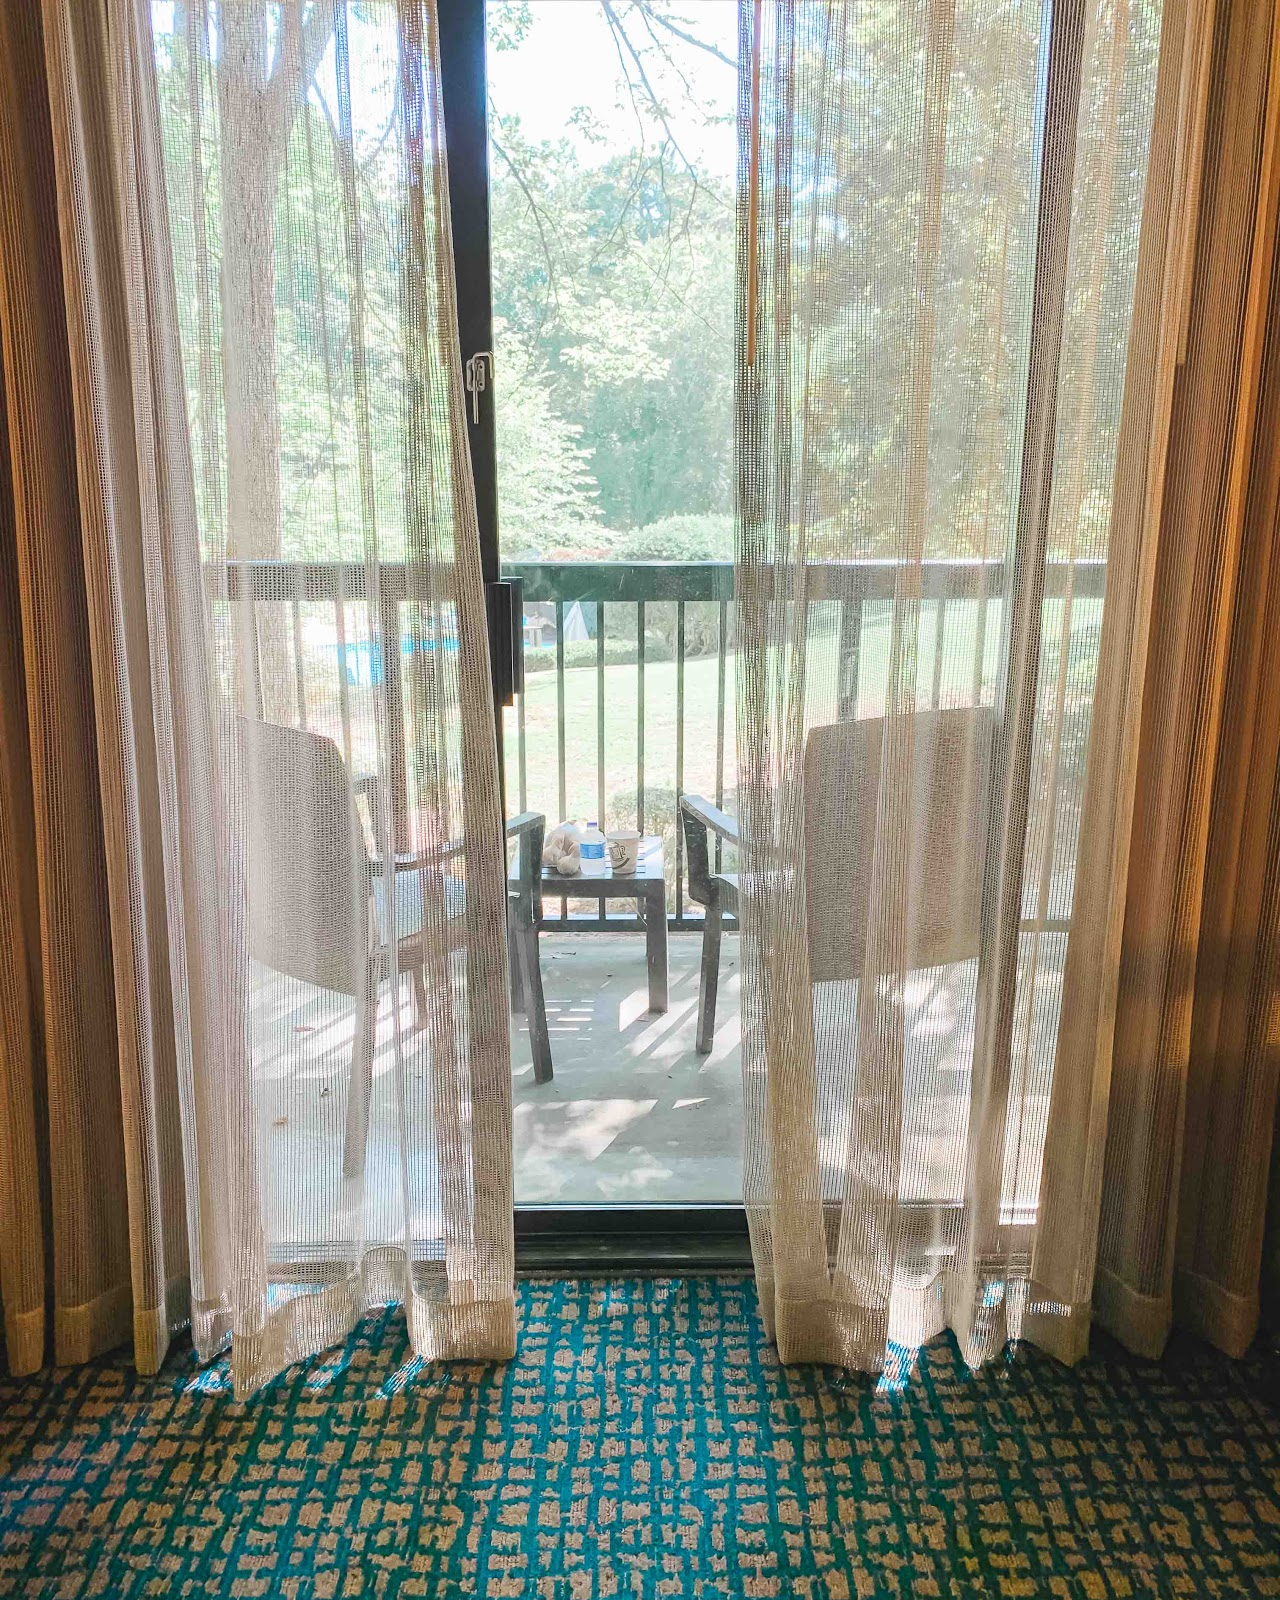 Where to Stay in Peachtree City, Georgia, USA